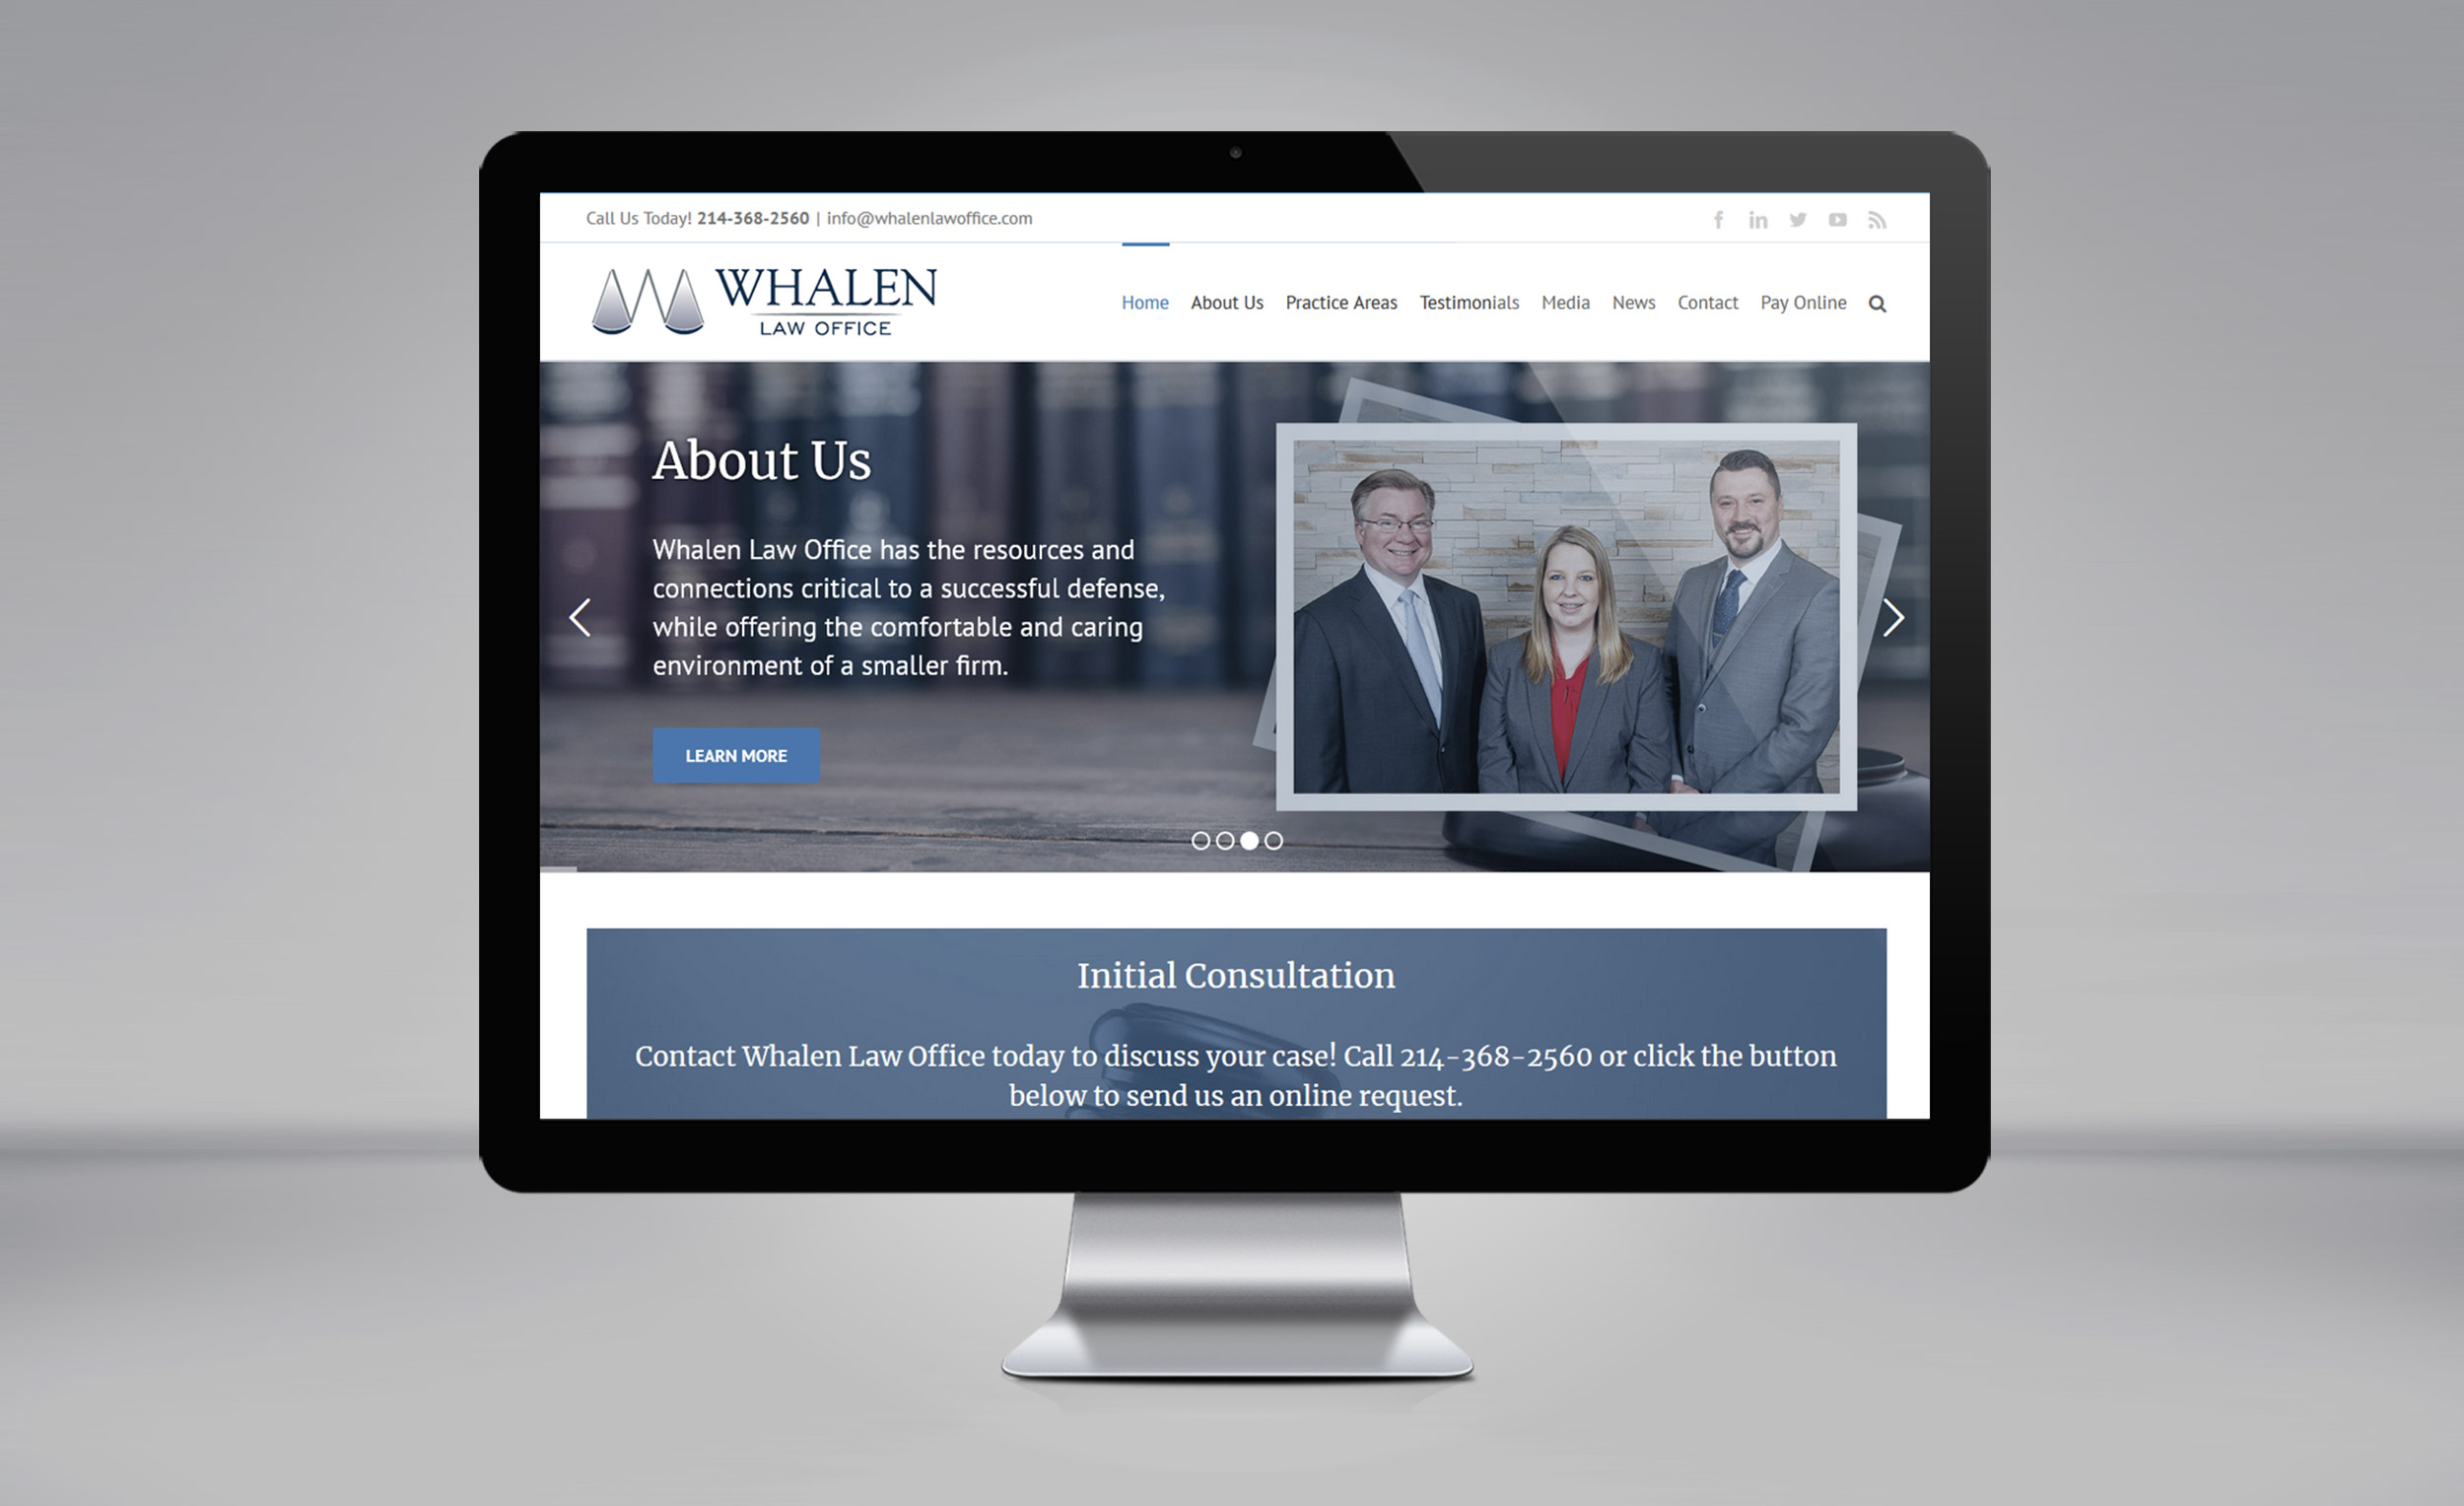 Whalen Law Office